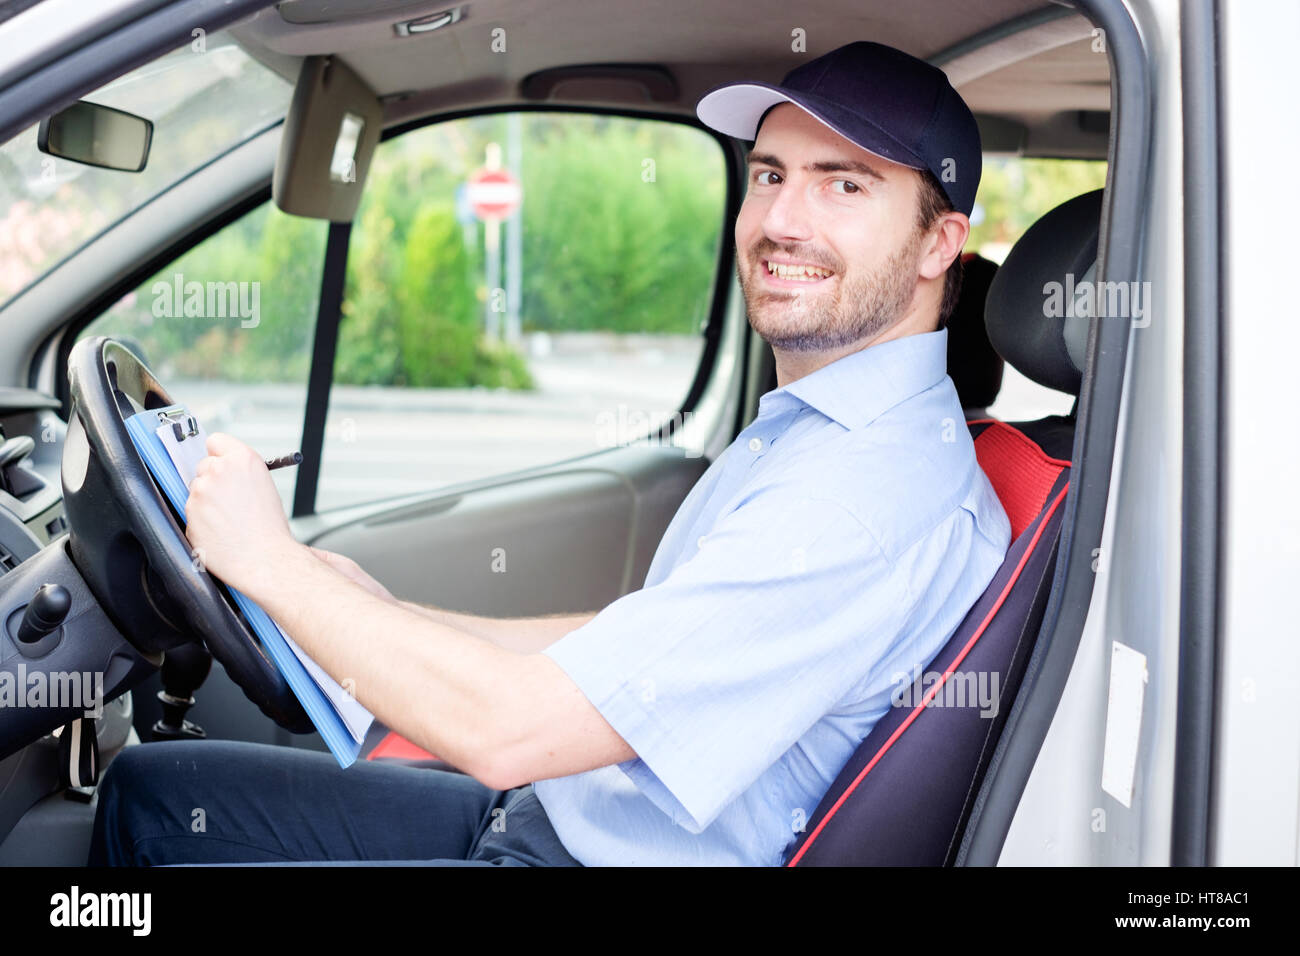 Portrait of confidence express courier on his delivery van - Stock Image